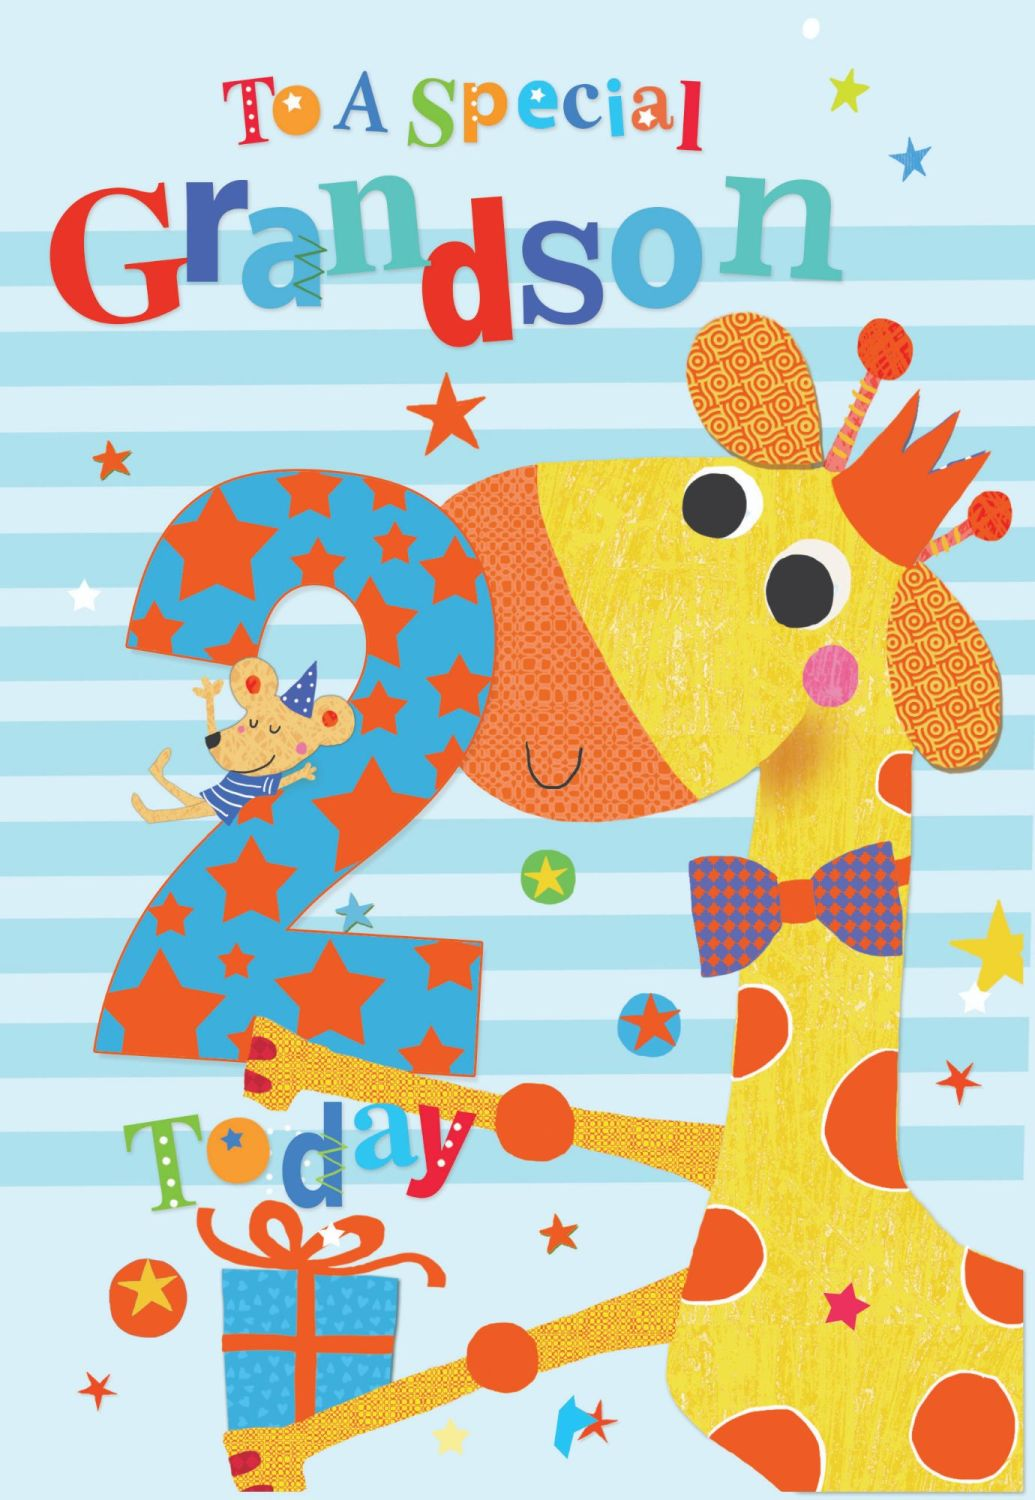 2nd Birthday Cards For Grandson - TO A Special GRANDSON - 2 TODAY - Special